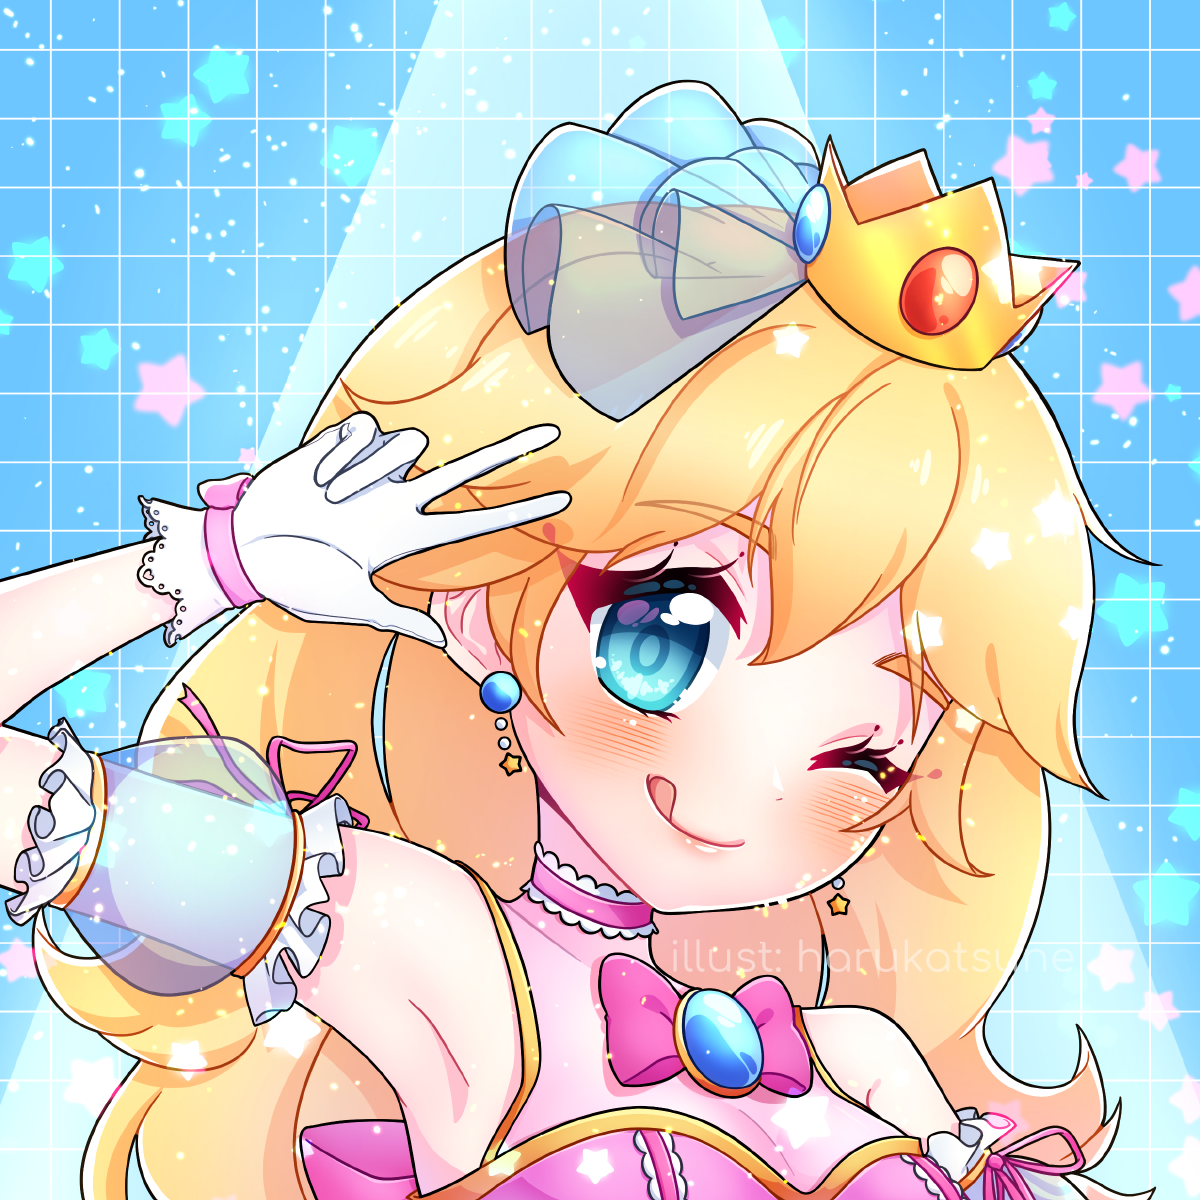 smash x idol: peach